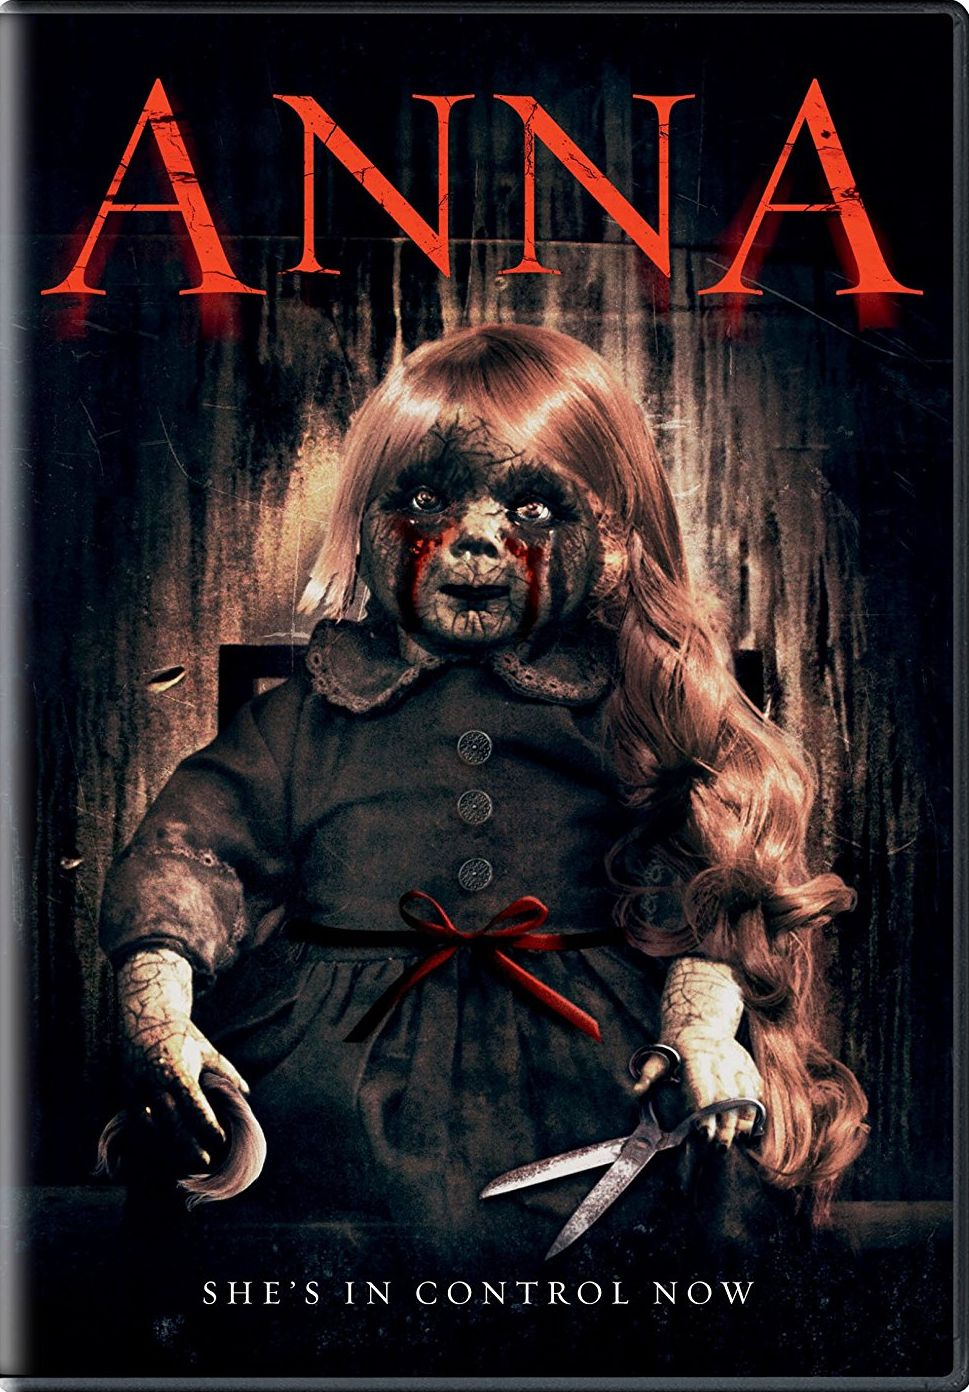 ANNA DVD (CINEDIGM) Anna movie, Horror movie fan, Horror